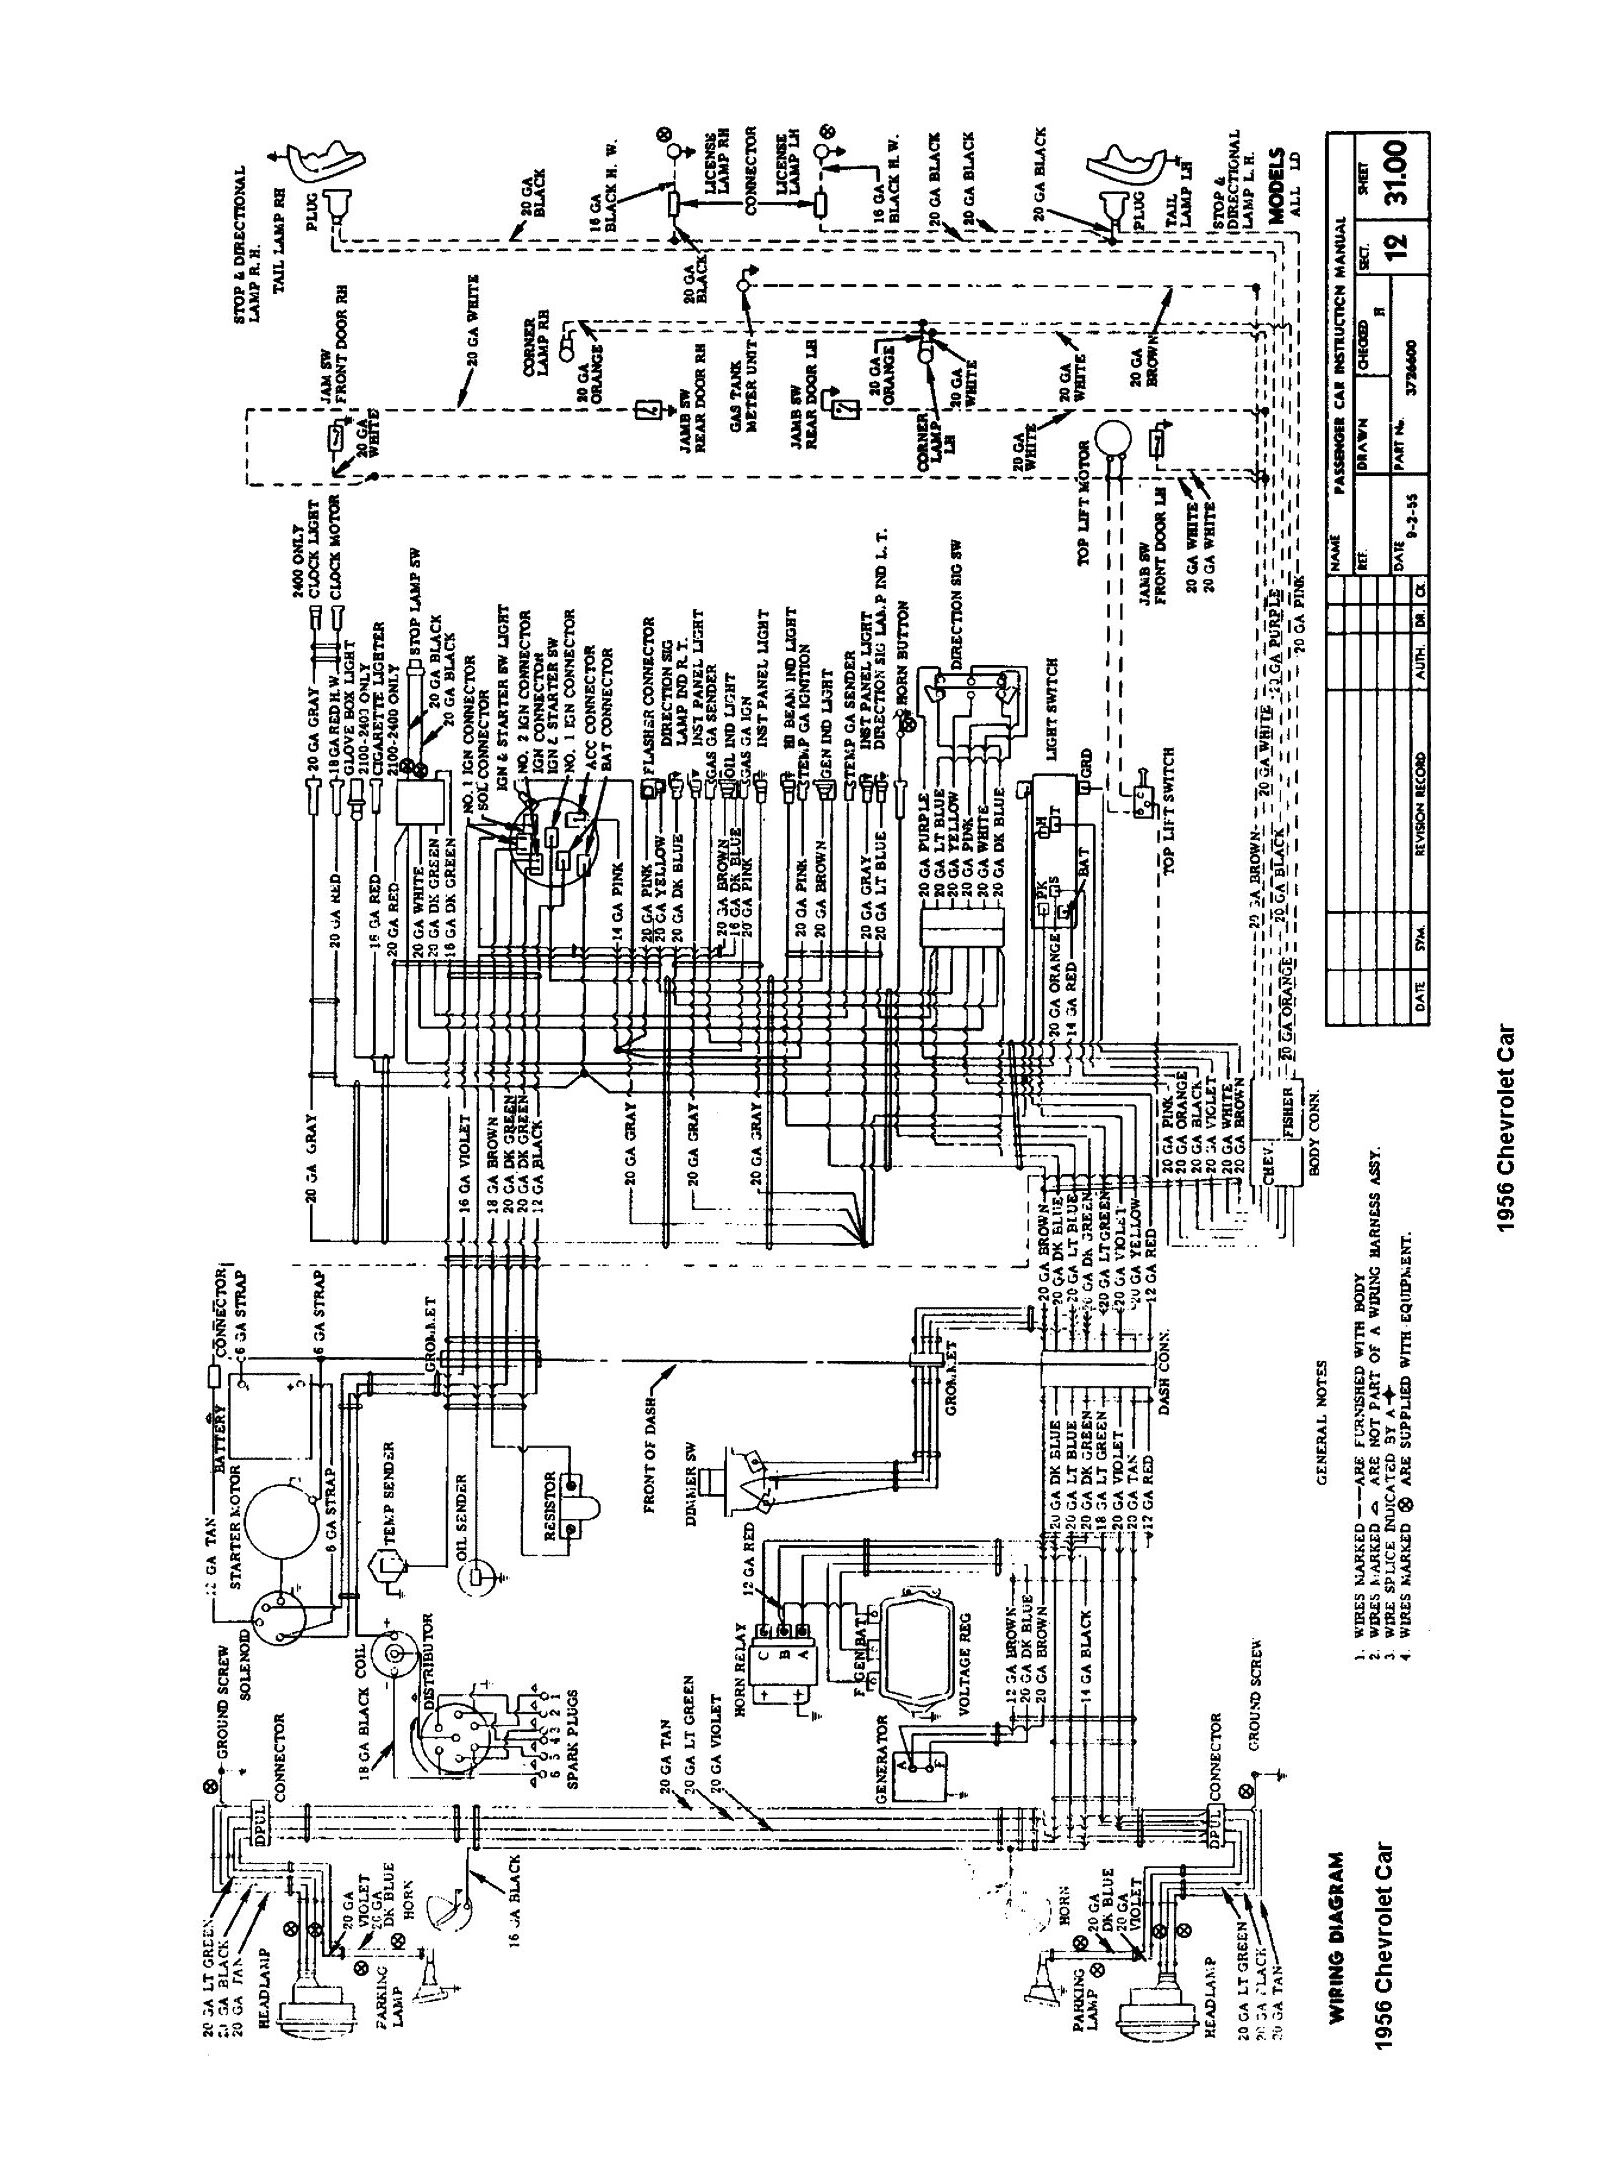 2014 Chevy Ignition Wiring Diagram Automotive Chevrolet Silverado Speaker U2022 Basic Equinox